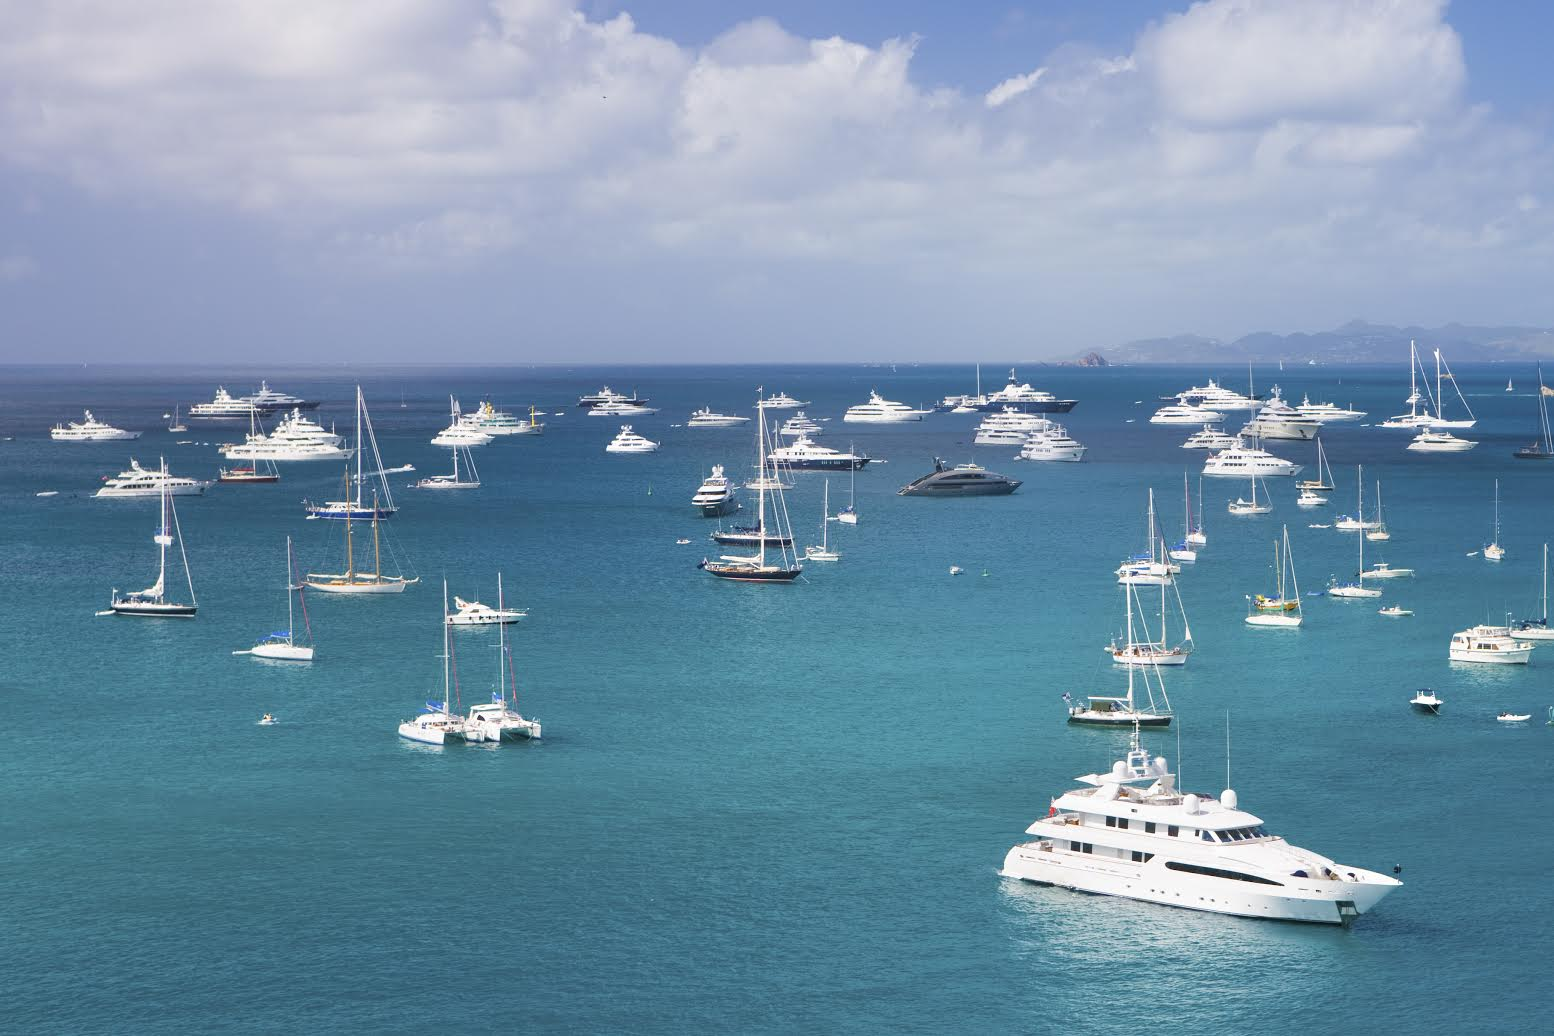 Boats for Sale - New and Used Yachts Sales - Buy Sell a Boat Online